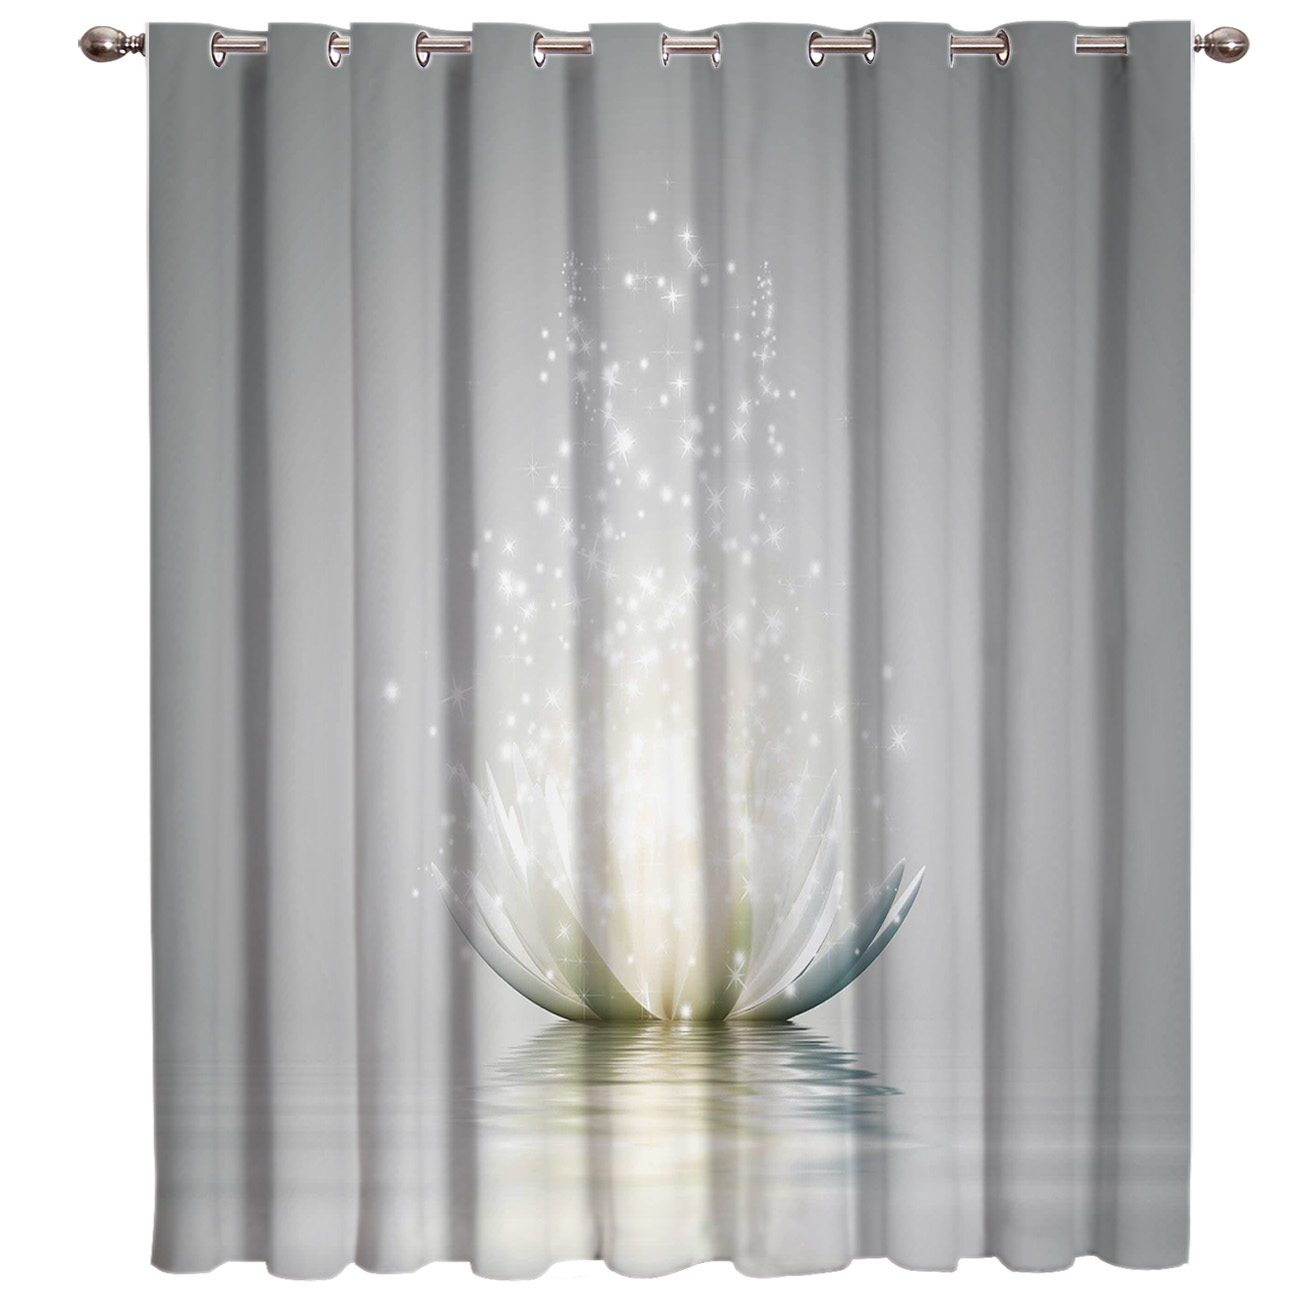 Flower Abstract Lotus Window Treatments Curtains Valance Window Curtains Dark Living Room Blackout Kitchen Outdoor Indoor Floral